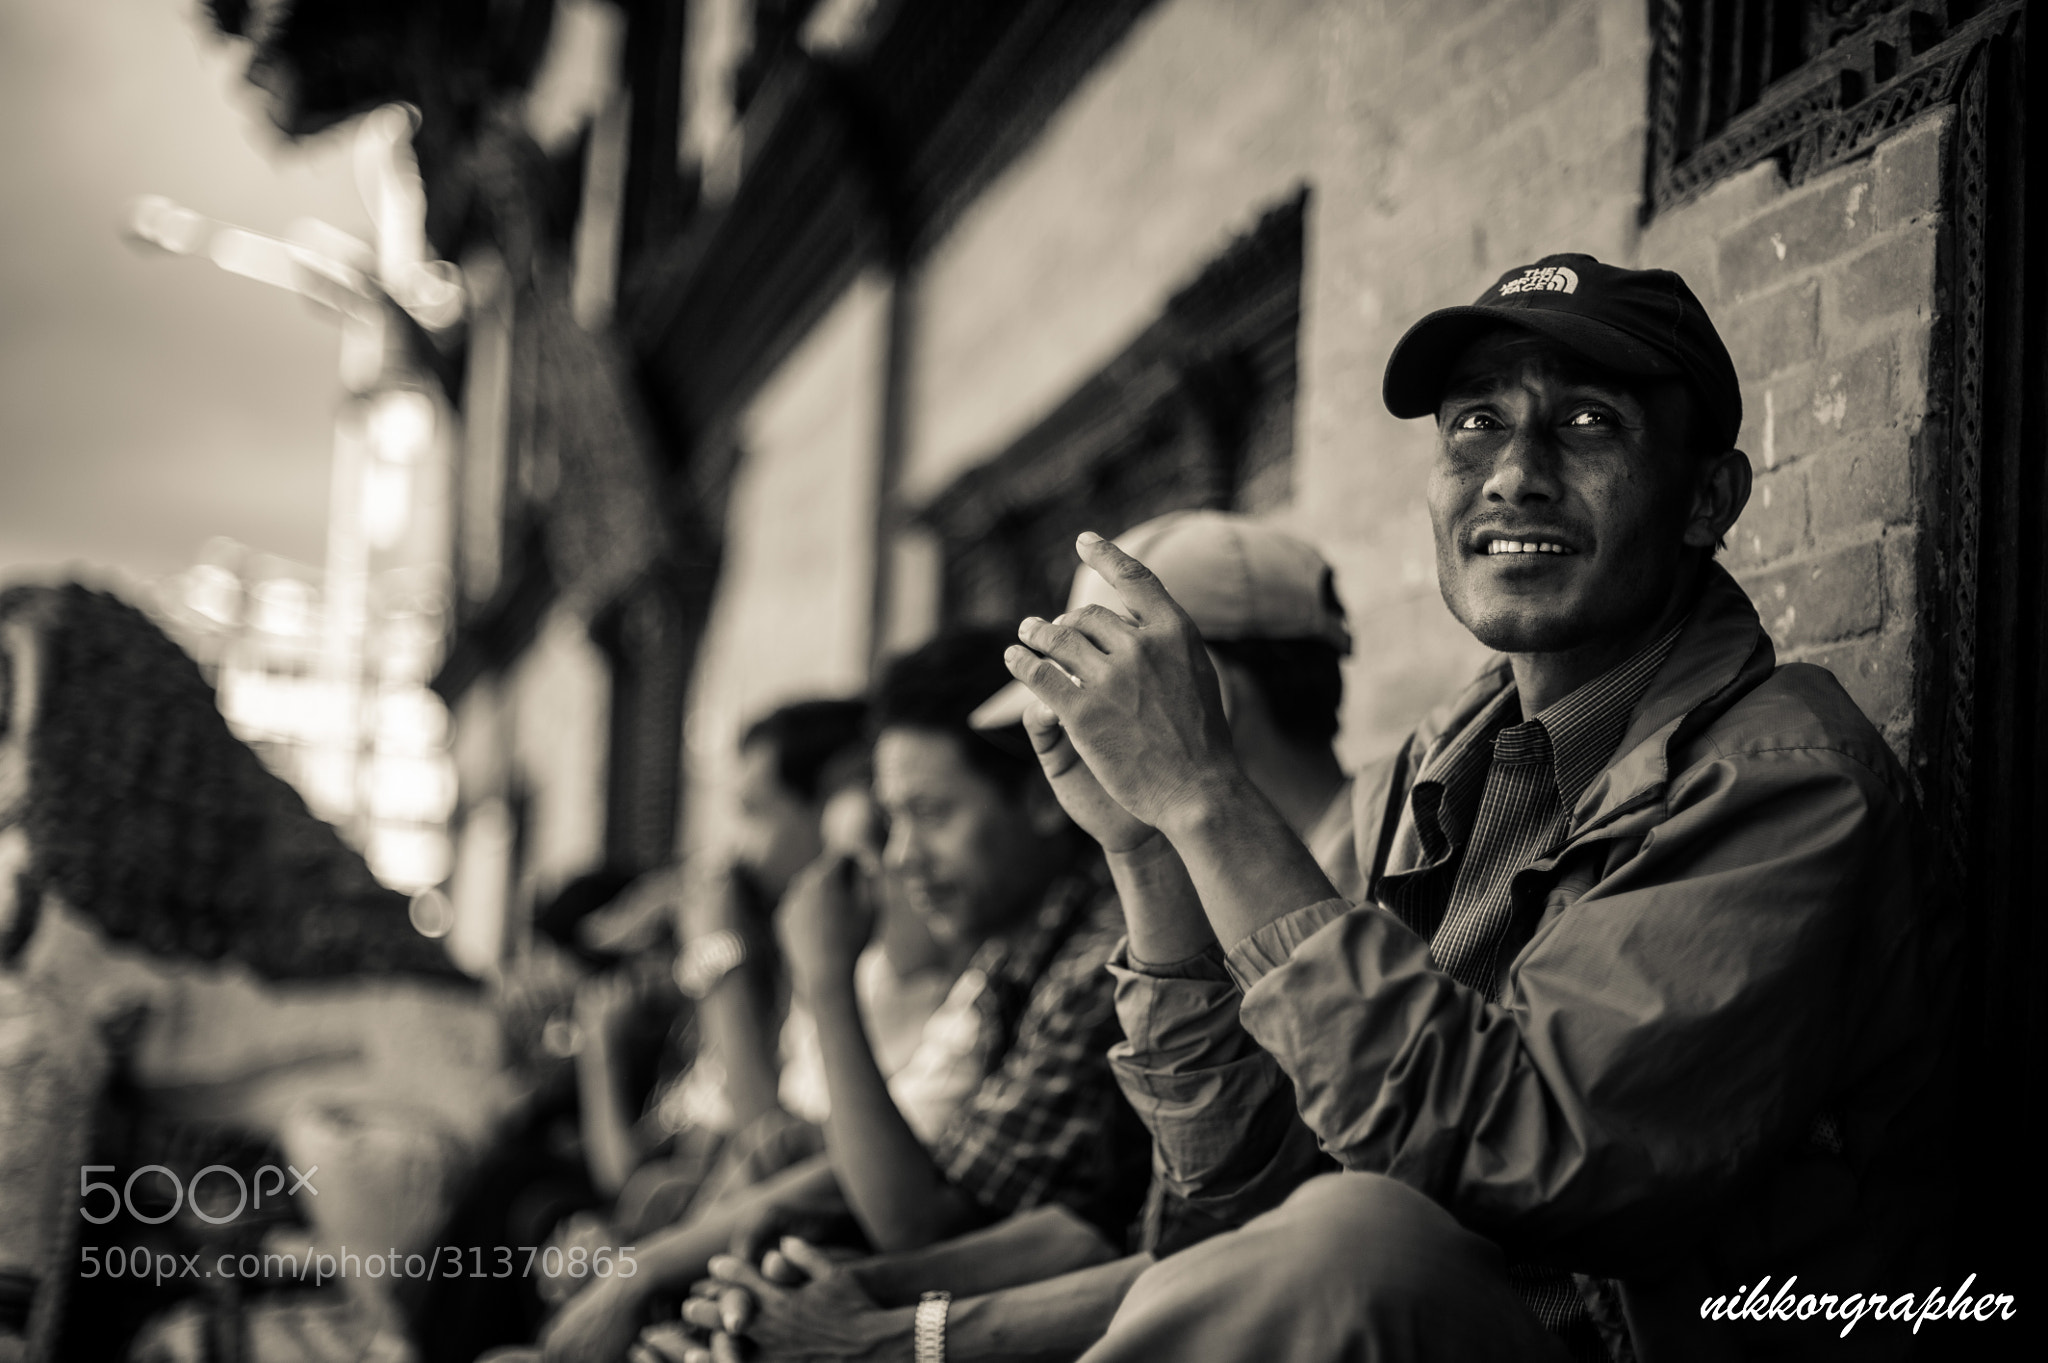 Photograph Untitled by Nikkorgraphy (Udhab) on 500px